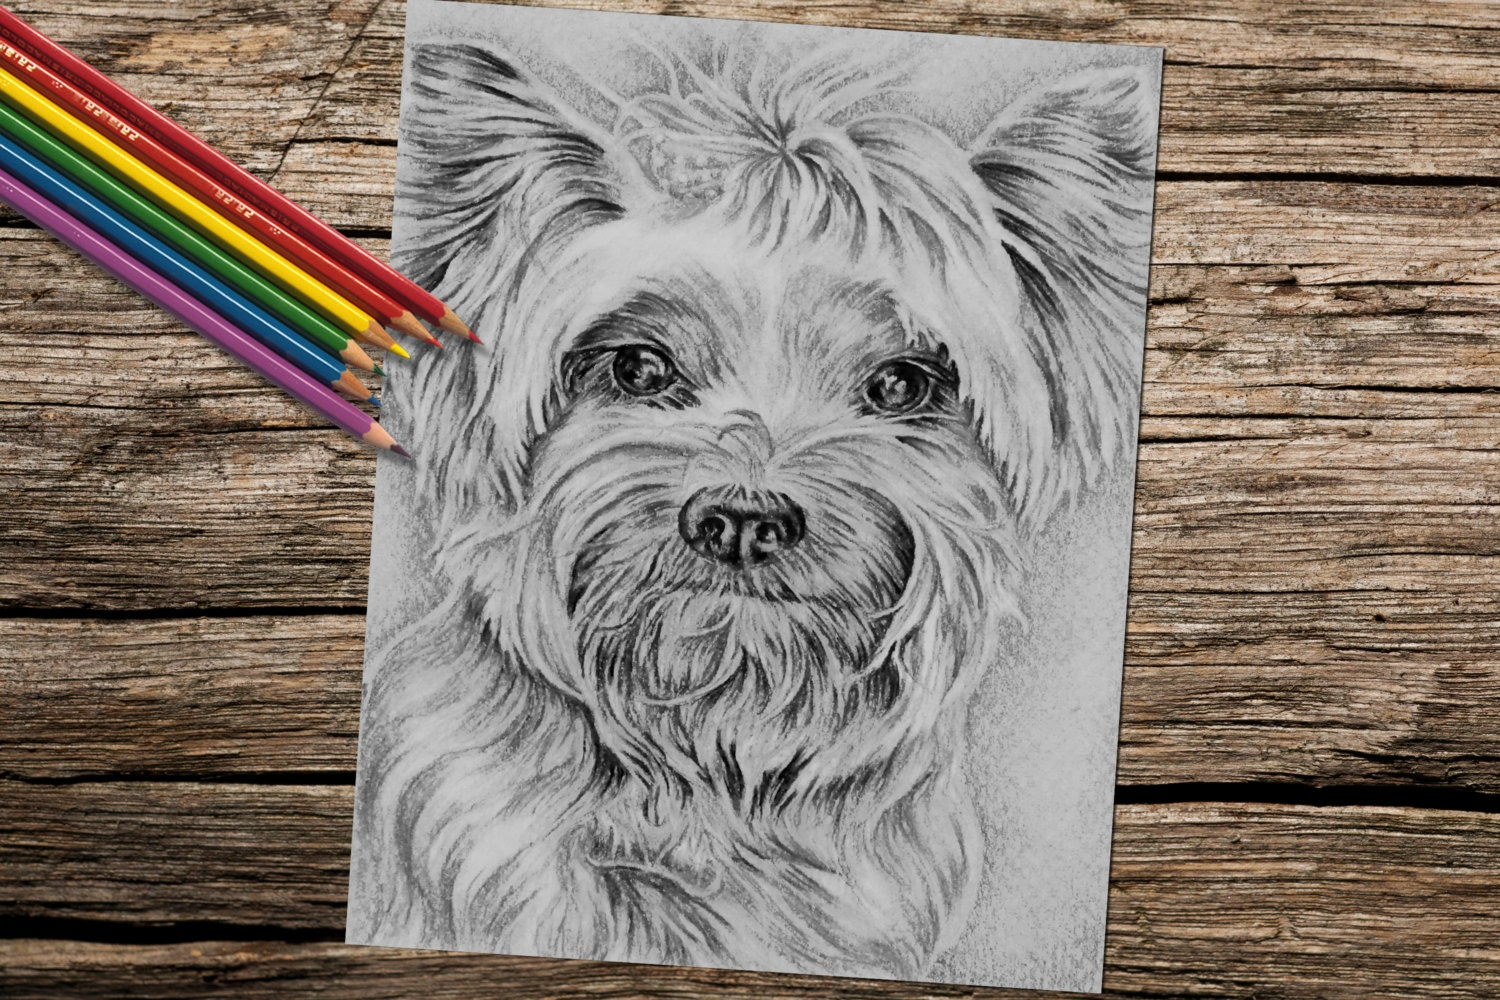 Yorkie dog coloring book page adult coloring book coloring